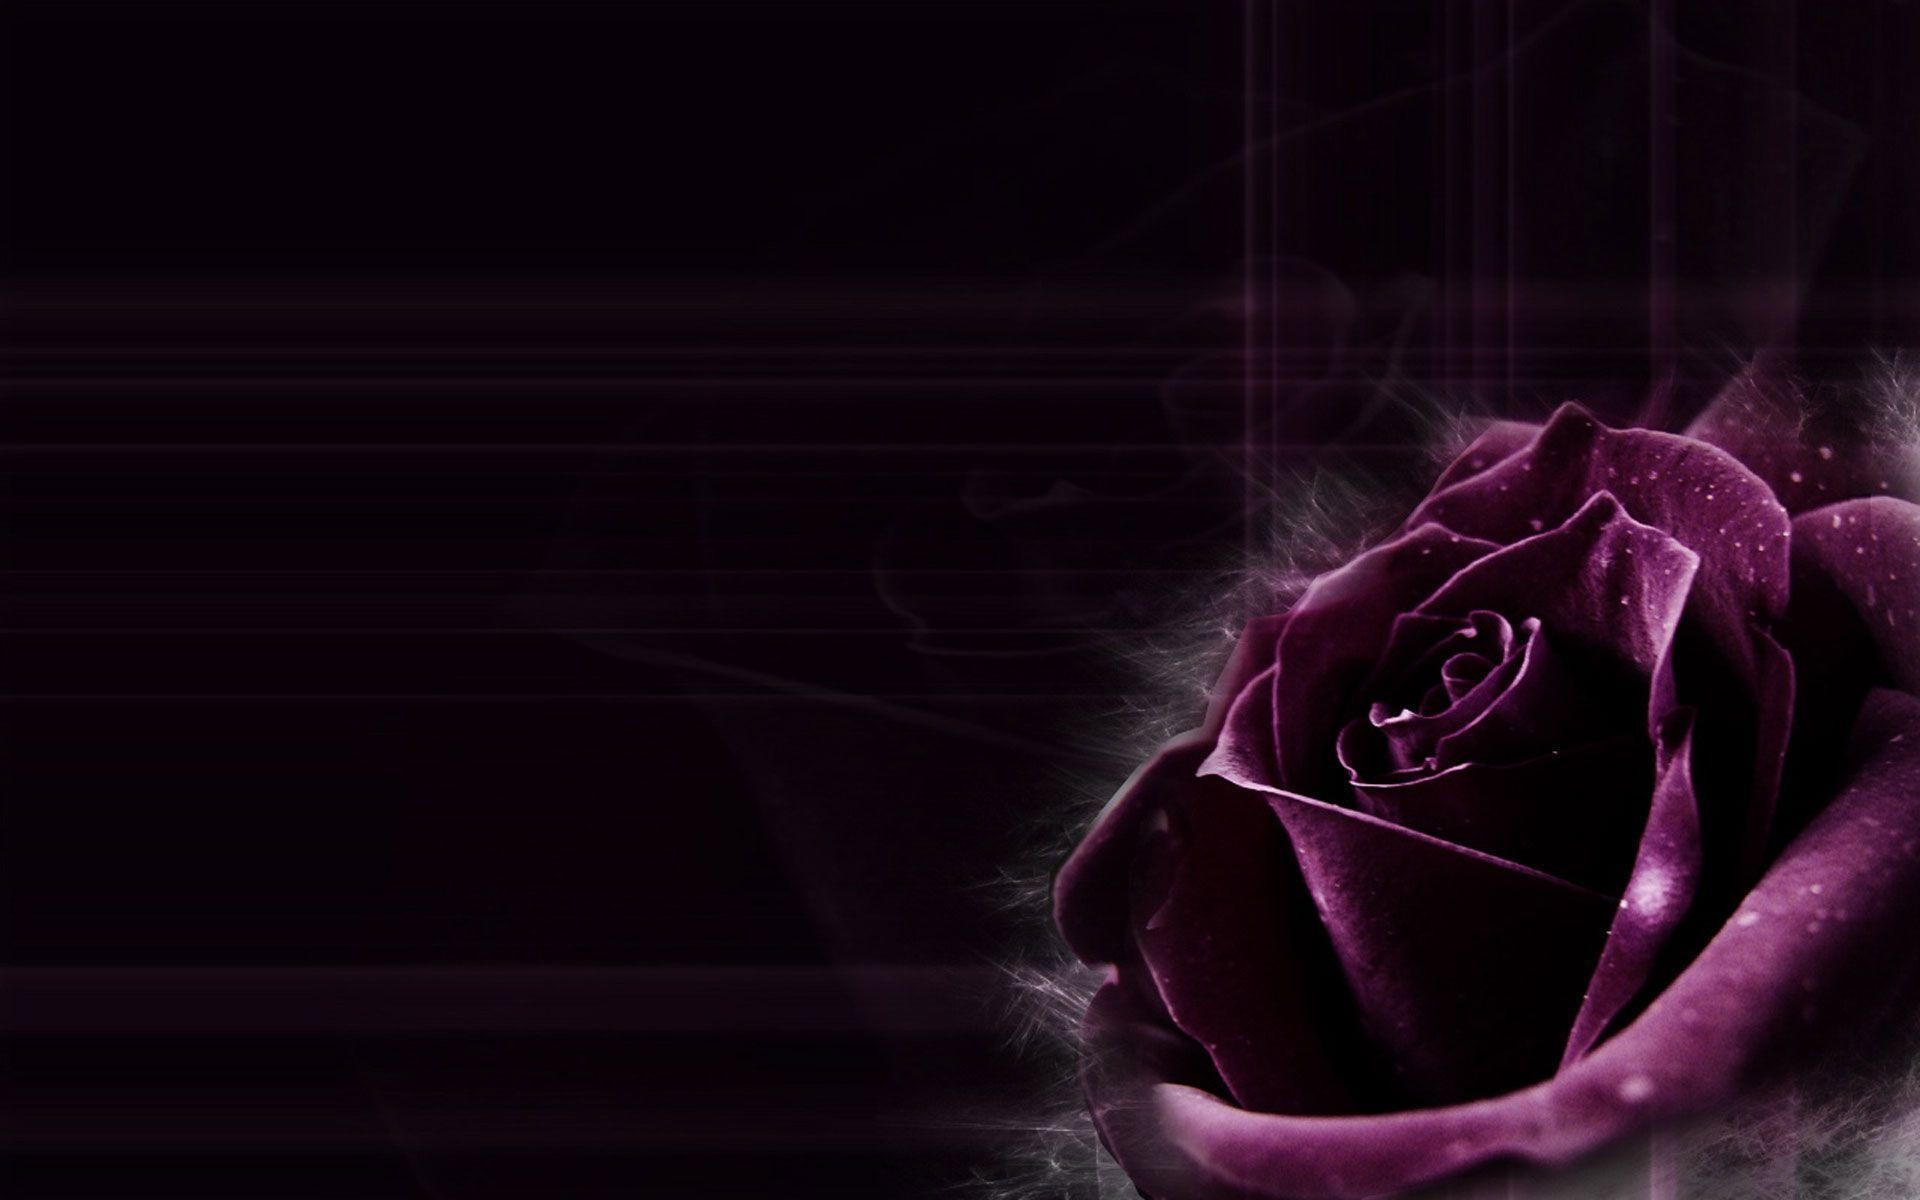 1920x1200 Dark Purple Rose Backgrounds Images & Pictures - Becuo